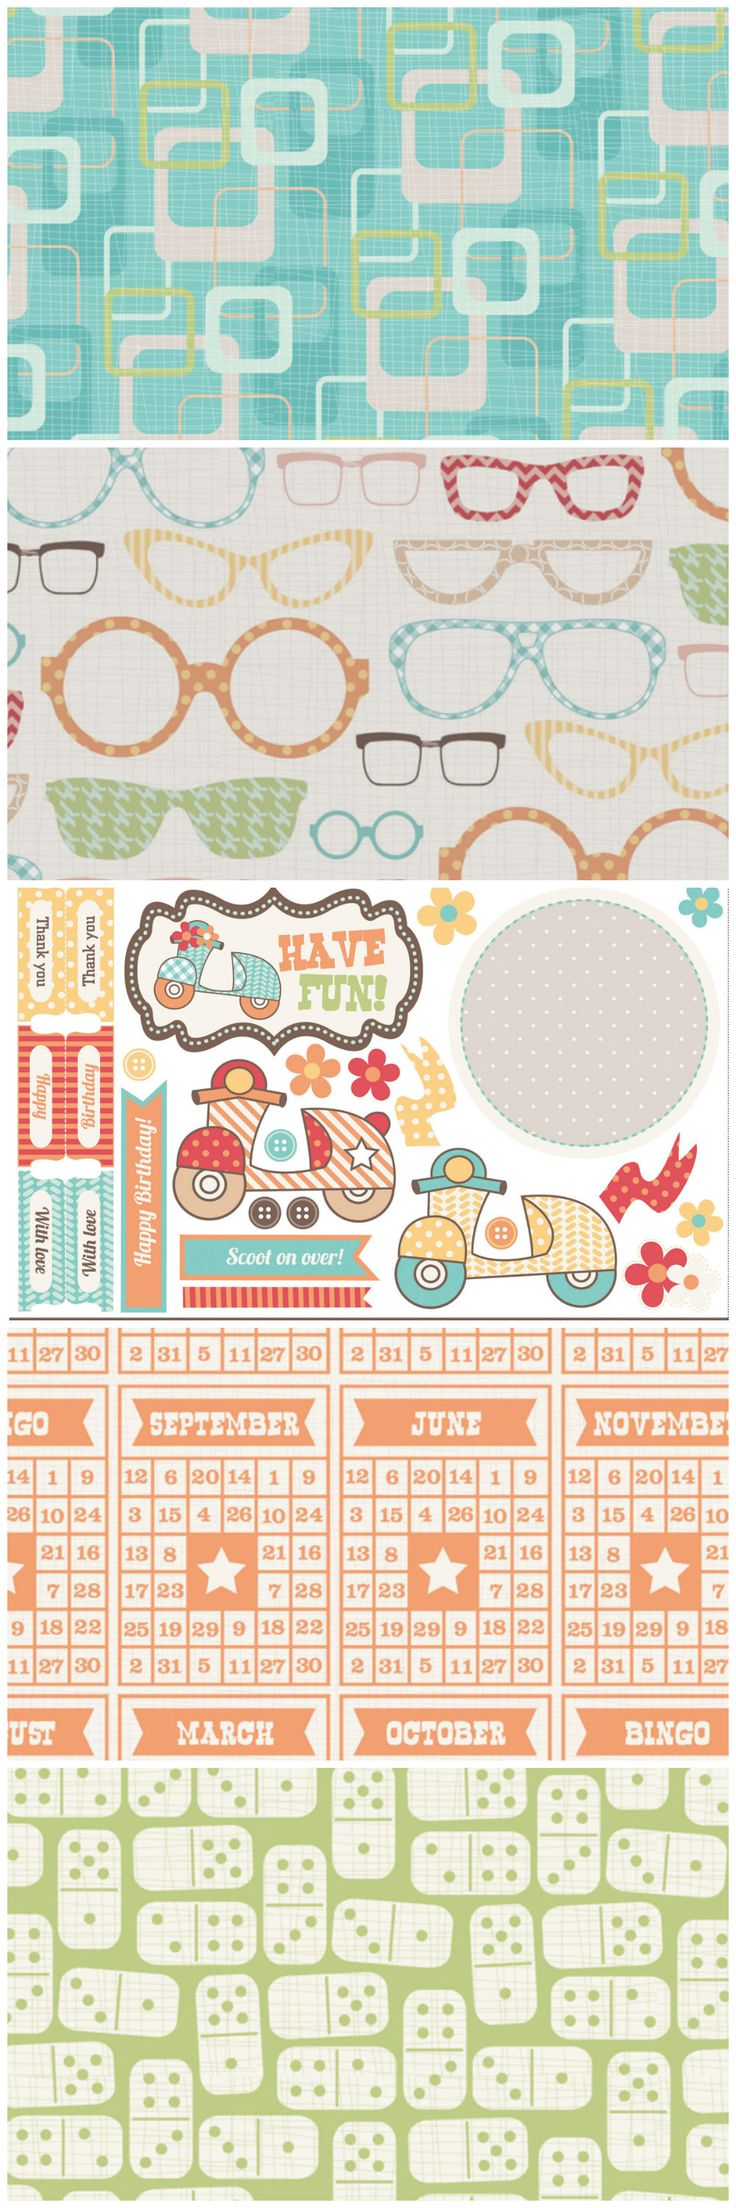 Scrapbook paper designs download - Go Vintage With These Retro Free Digital Paper Designs From Papercraft Inspirations 121 Download Them